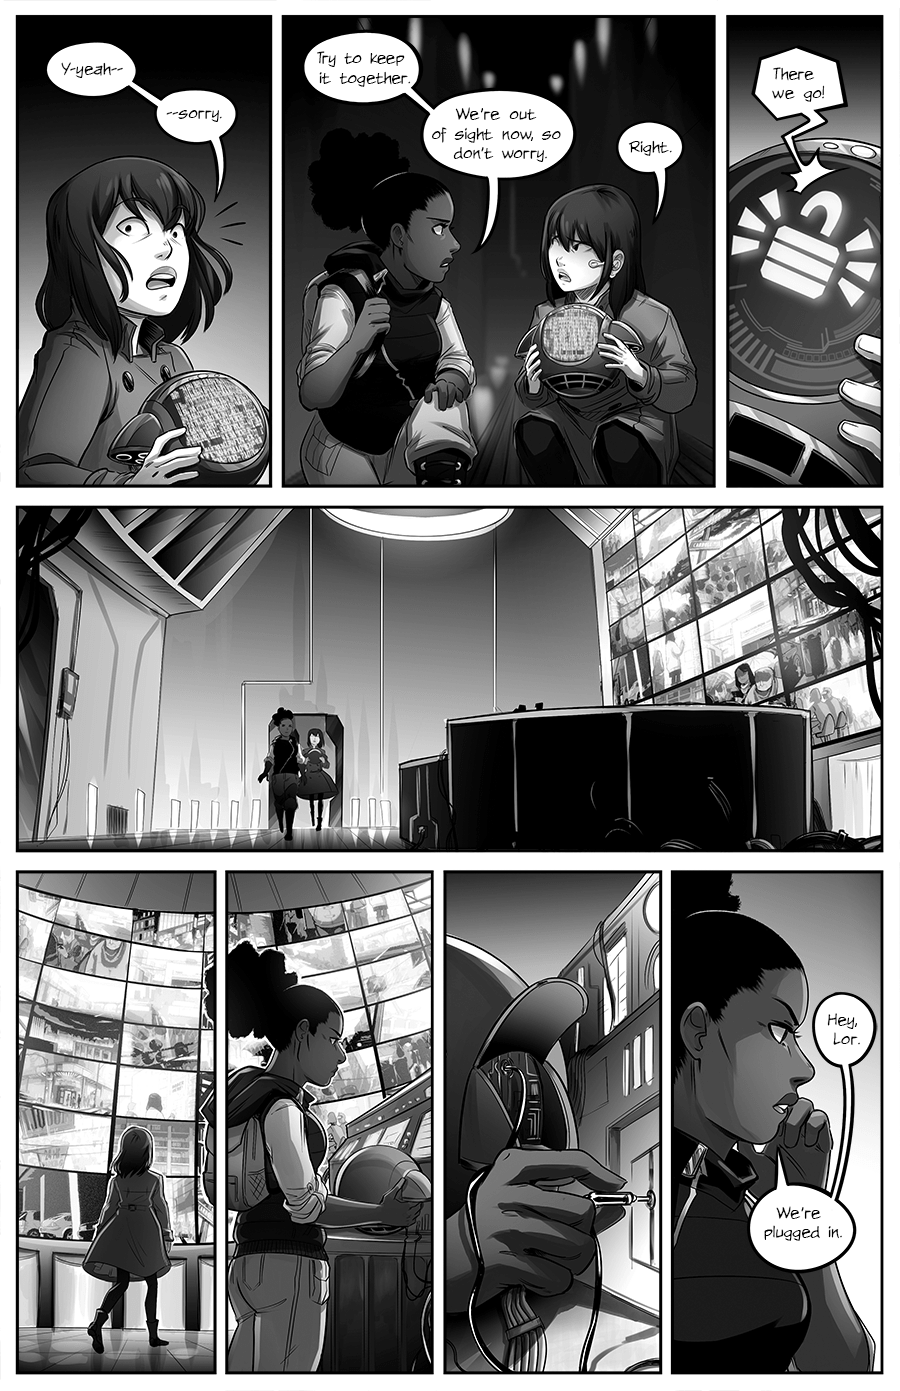 Ch 4 Page 30